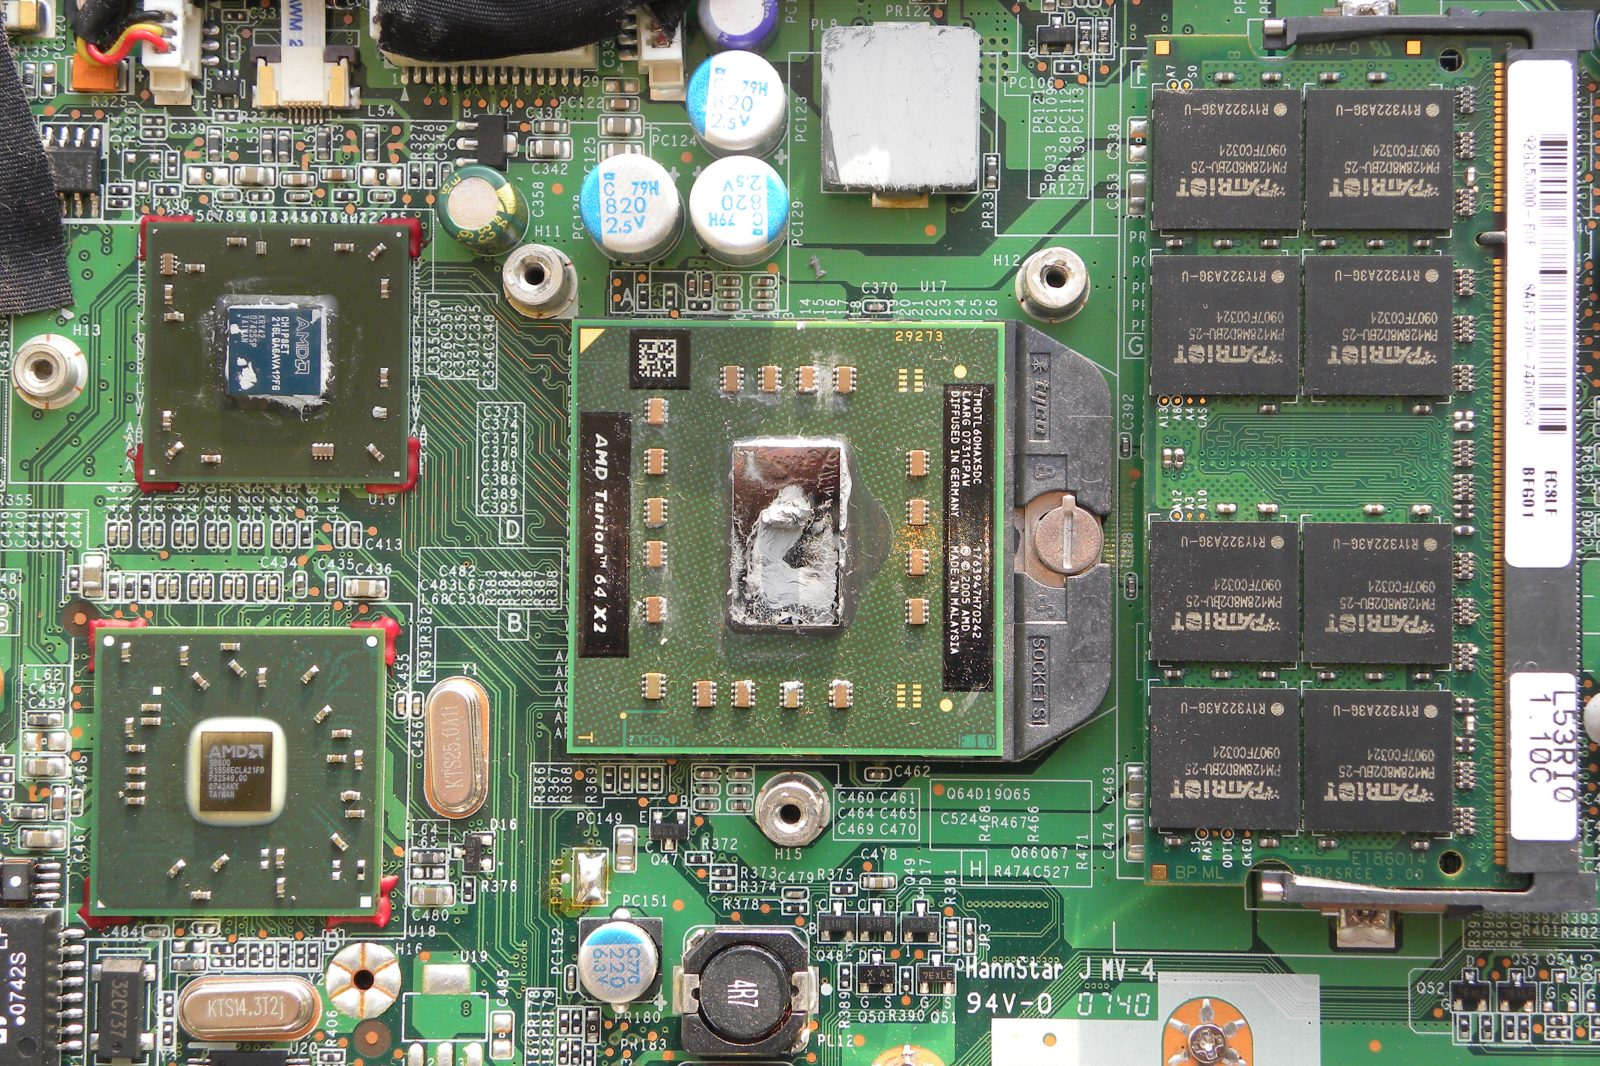 Upgrading drivers for ati x1200 graphics